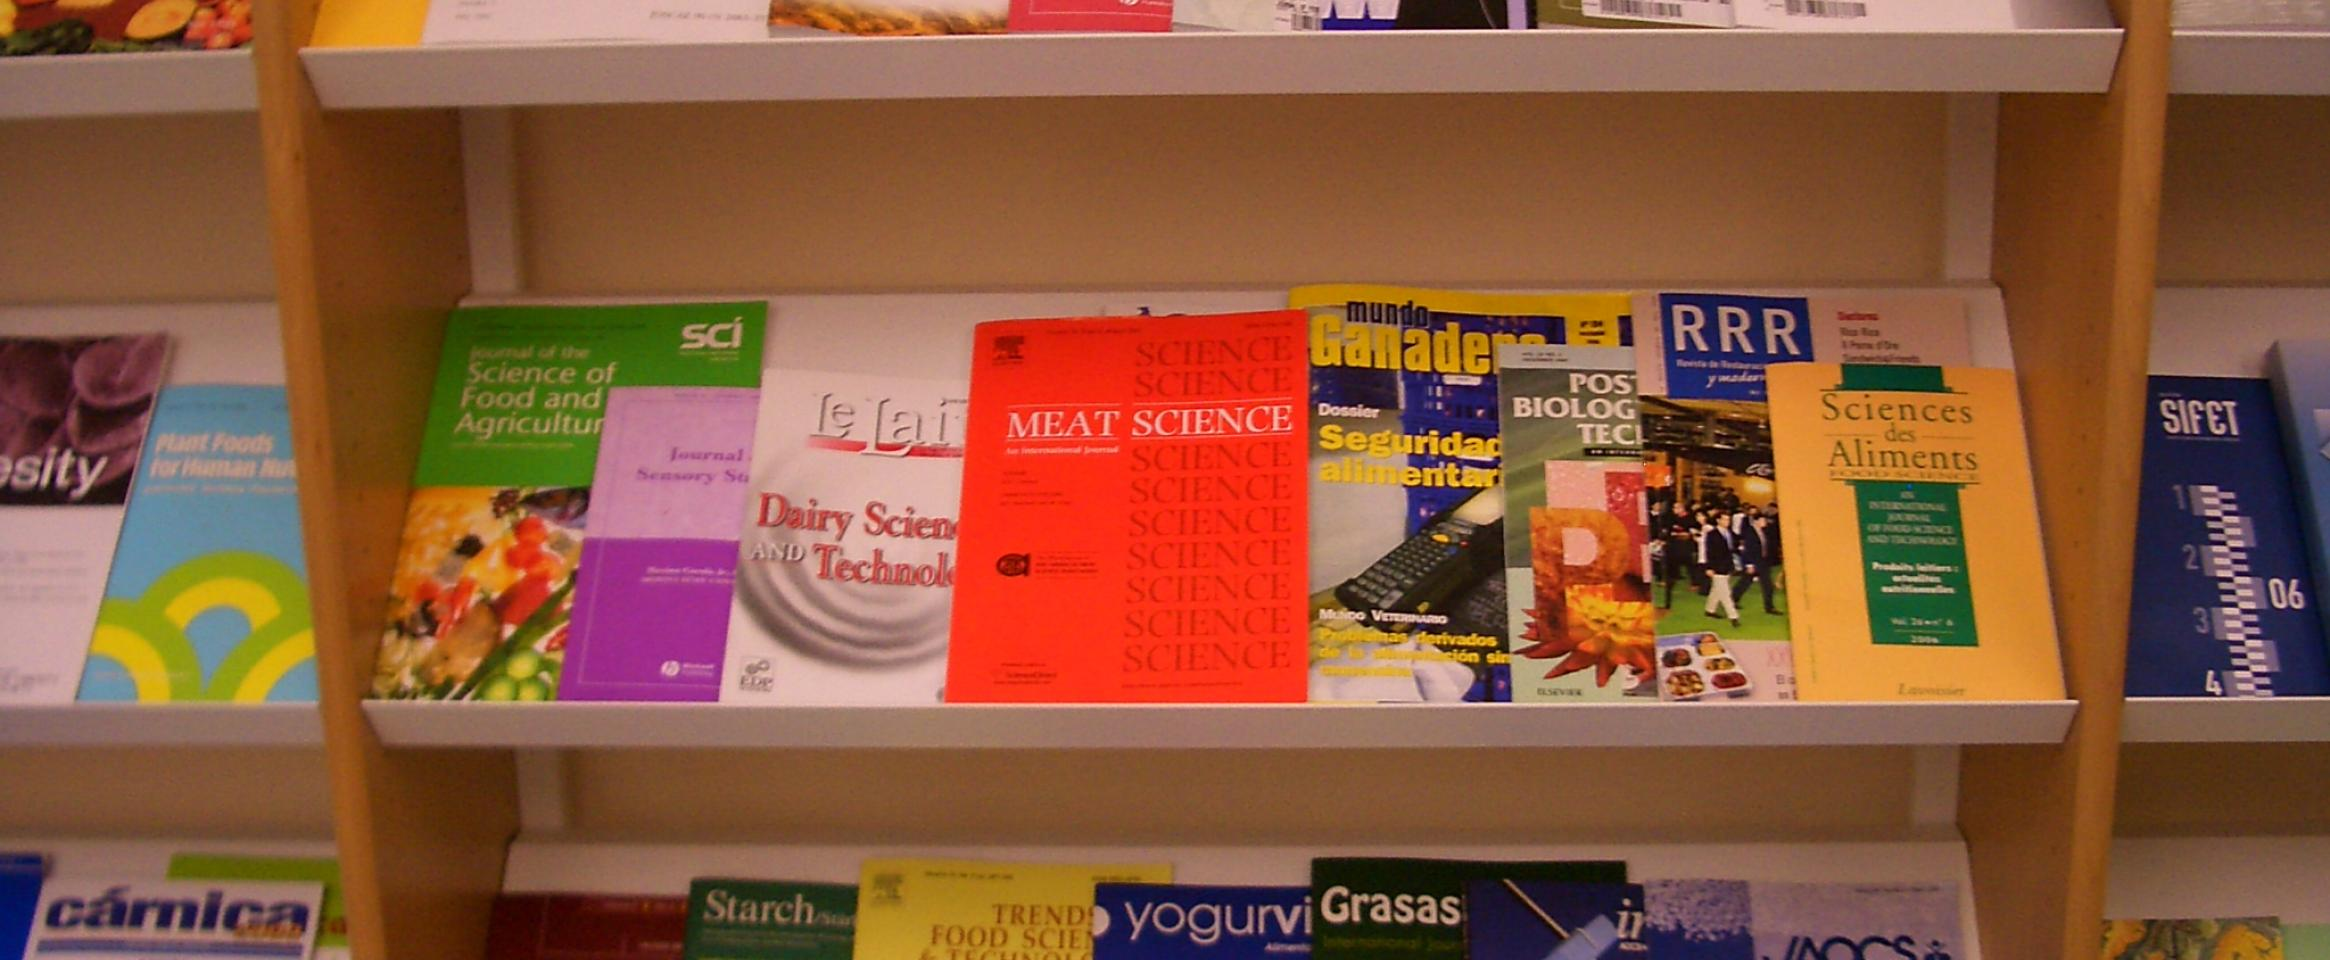 Science journals on bookshelf